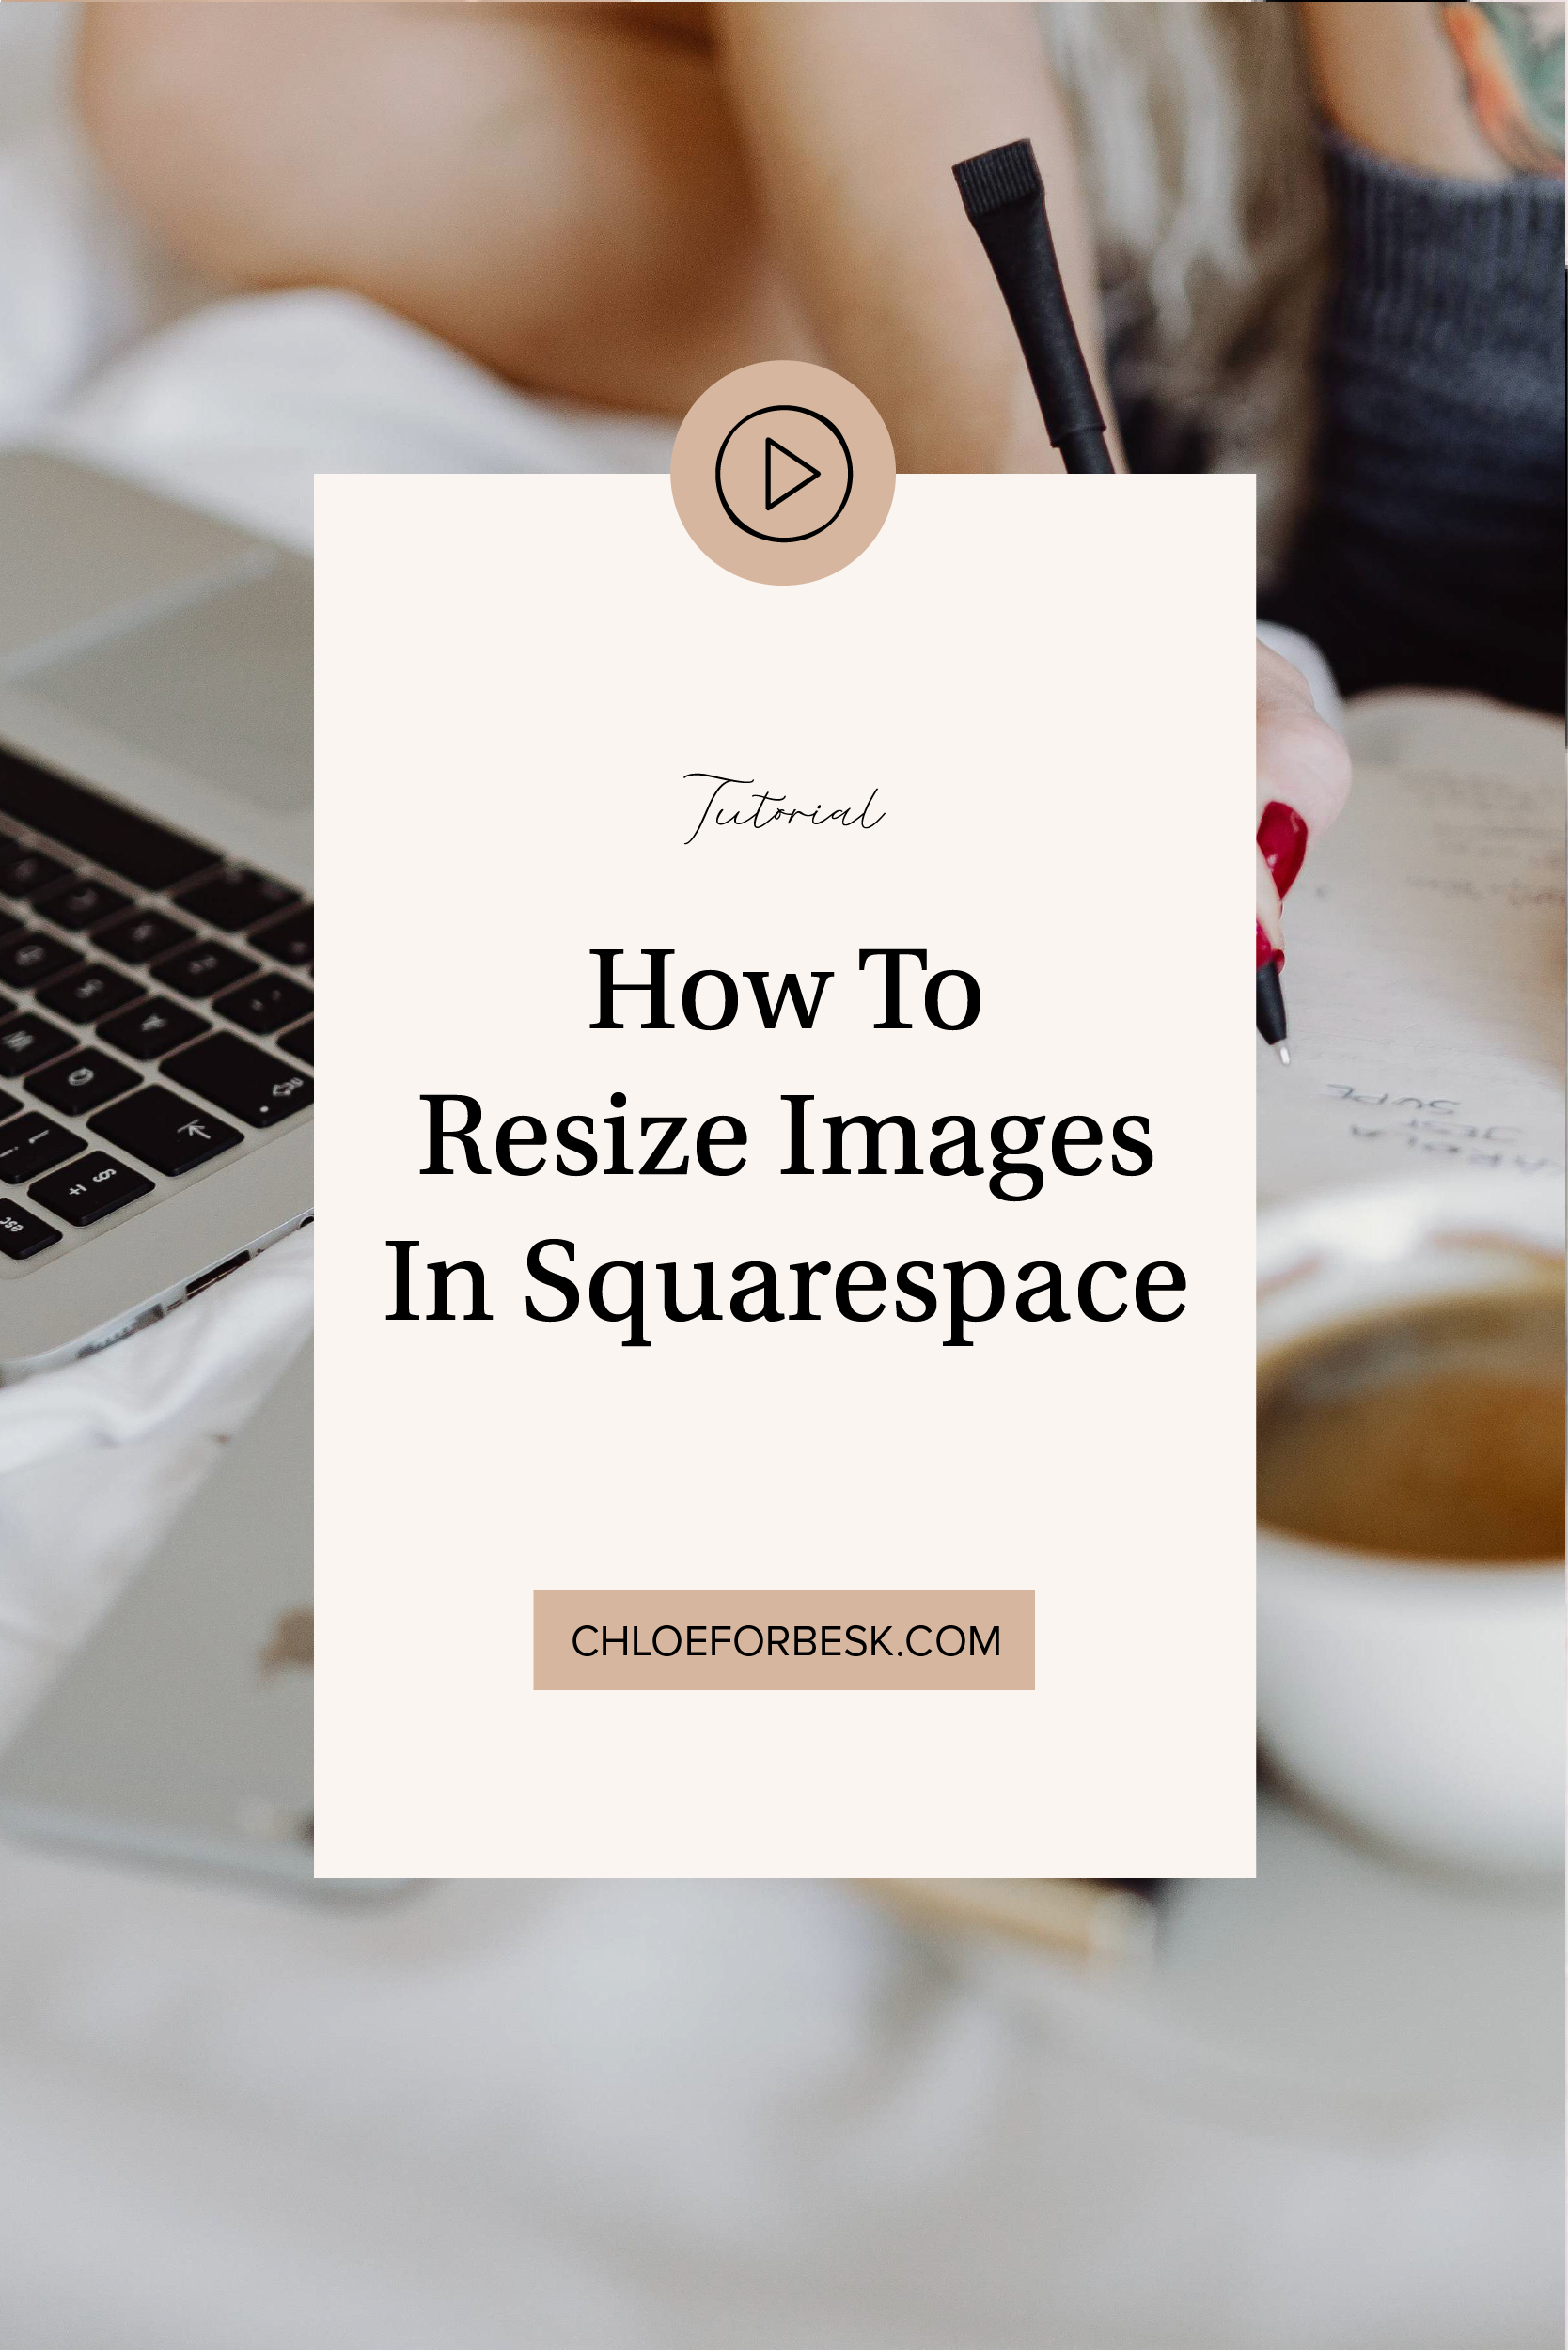 How To Resize Images In Squarespace-03.png